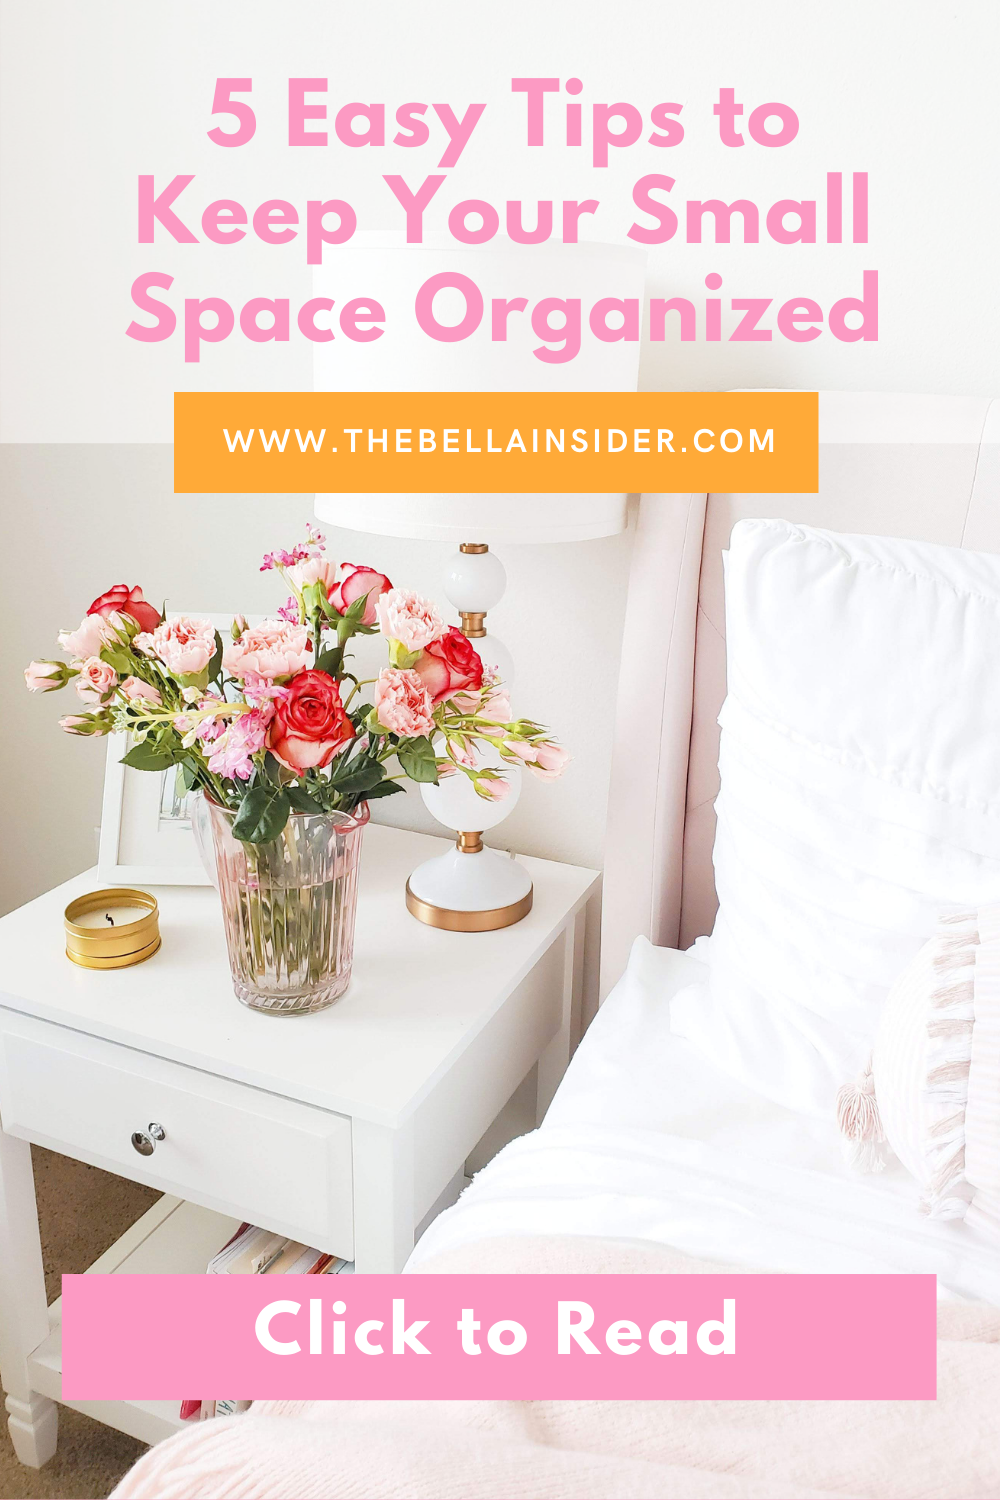 5 Easy Tips to Keep Your Small Space Organized - TheBellaInsider.com